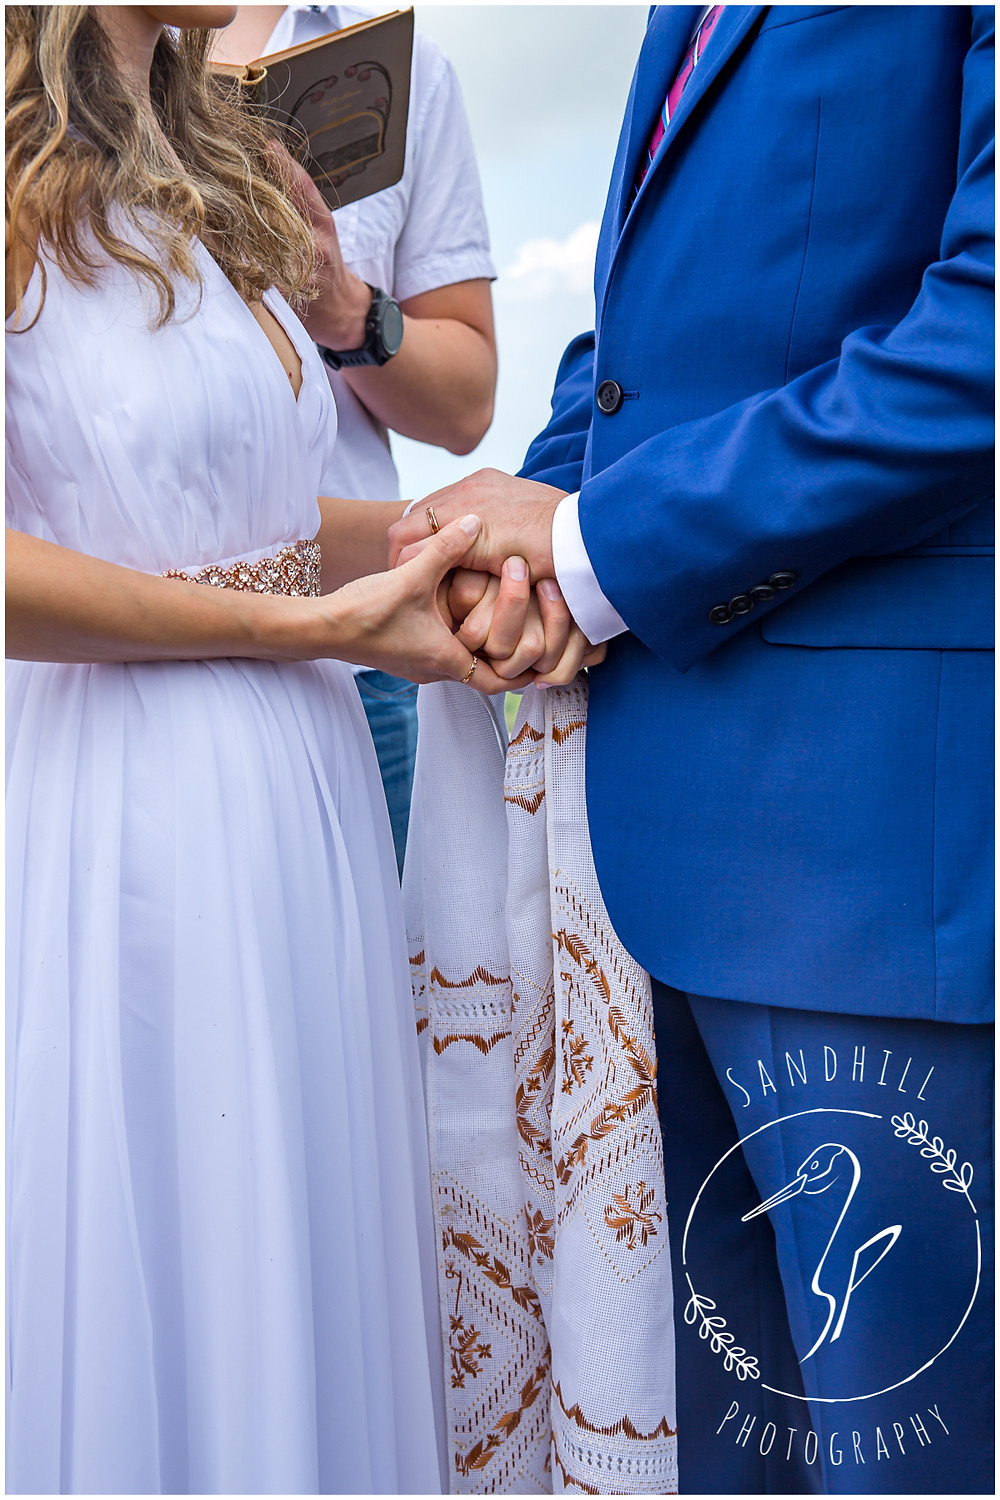 Destination Wedding Photographer, bride and groom clasp hands, image by Sandhill Photography, Bradenton FL